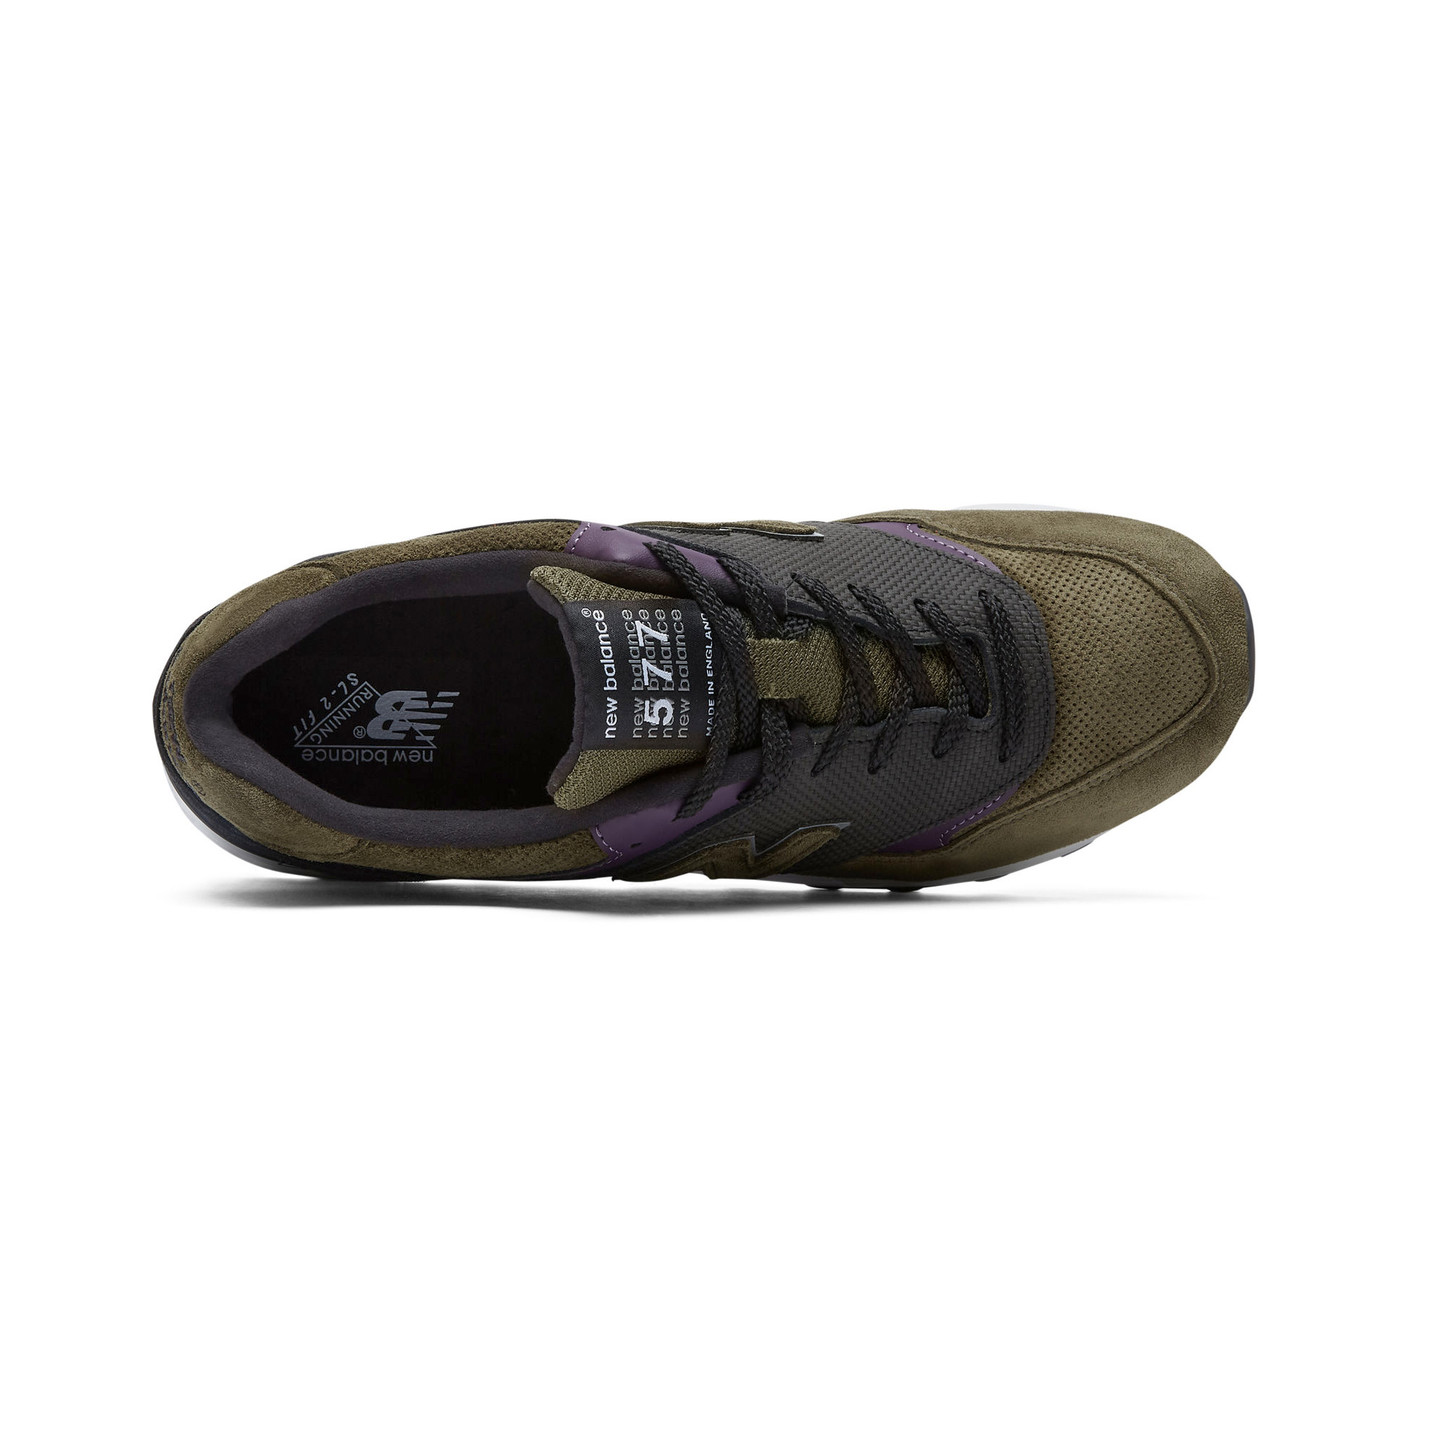 New Balance M577 GPK - Made in England Olive / Purple / Black M577GPK